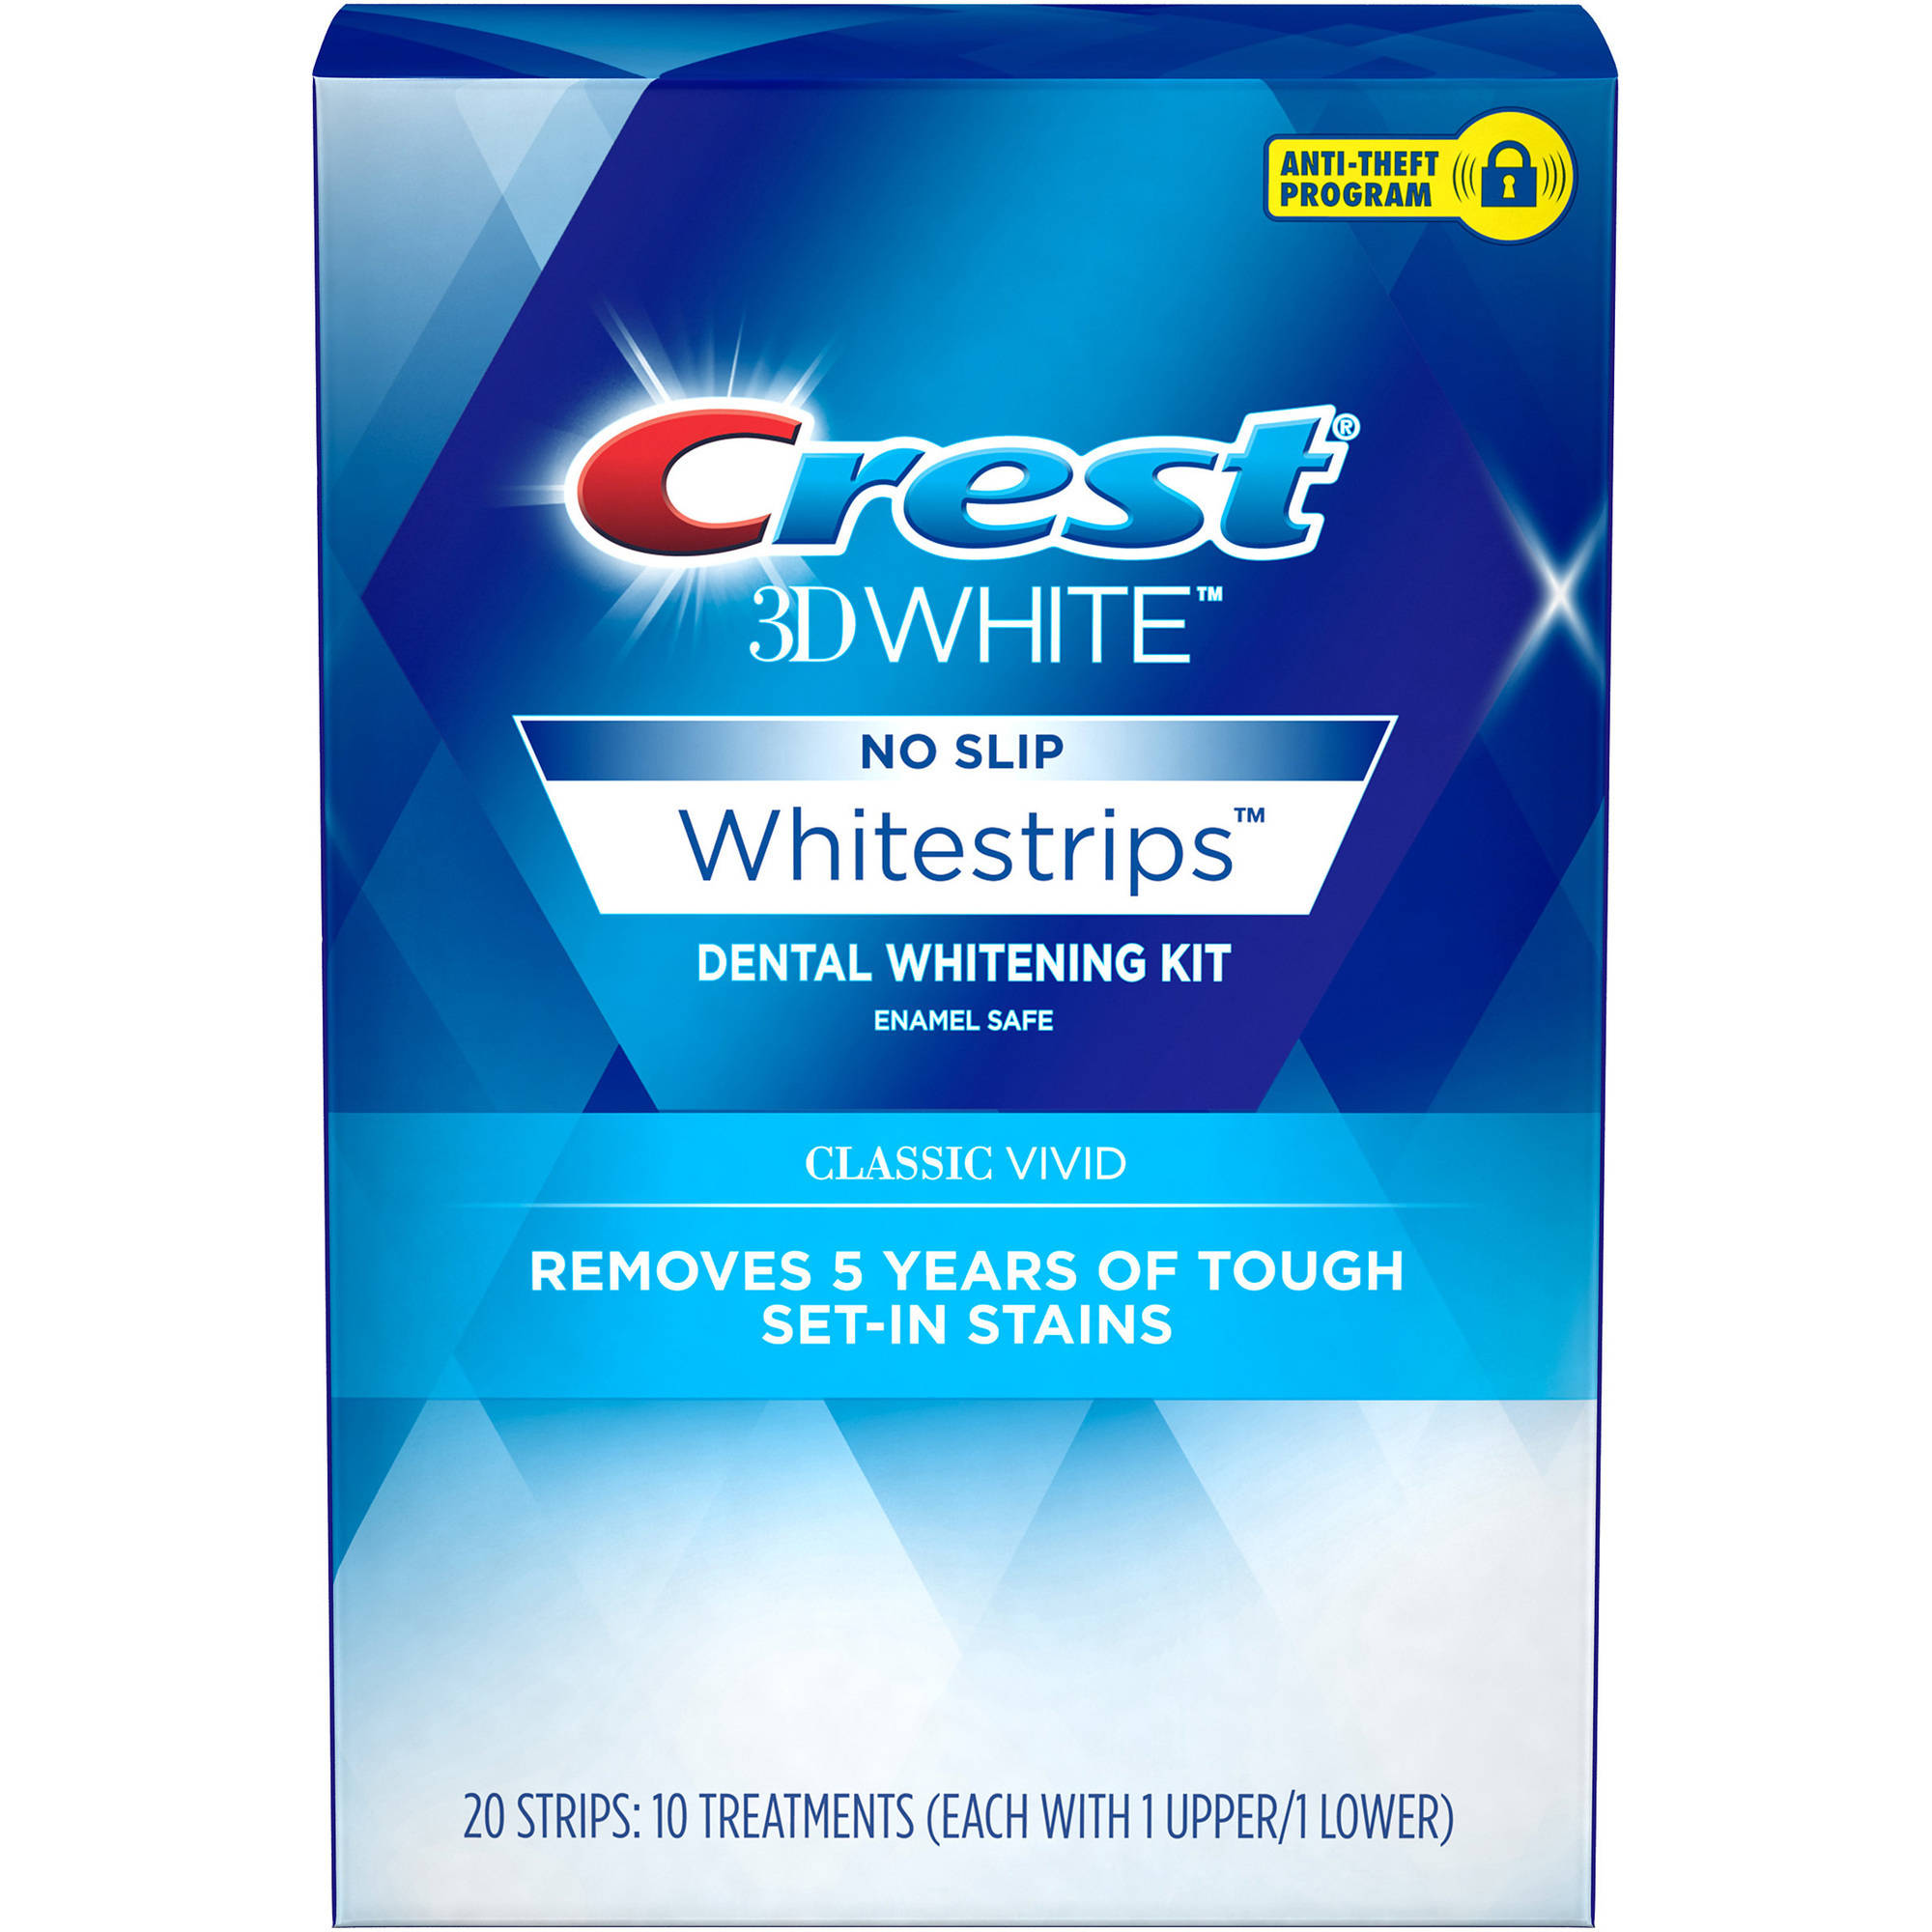 Crest 3D White Classic Vivid No Slip Whitestrips Dental Whitening Kit